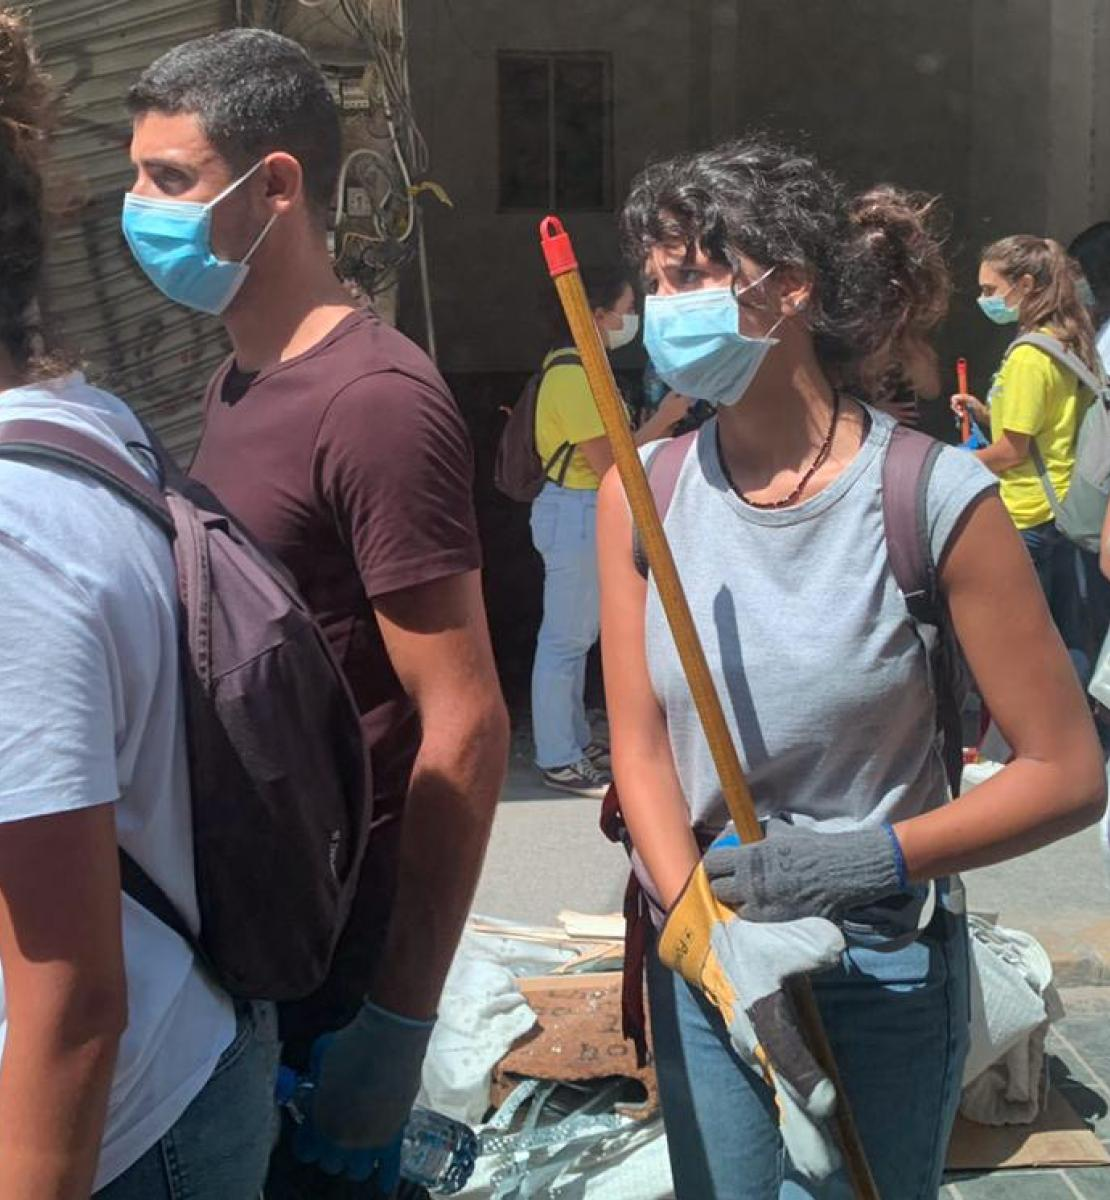 Youth volunteers walk together with equipment and supplies as they wear protective masks.